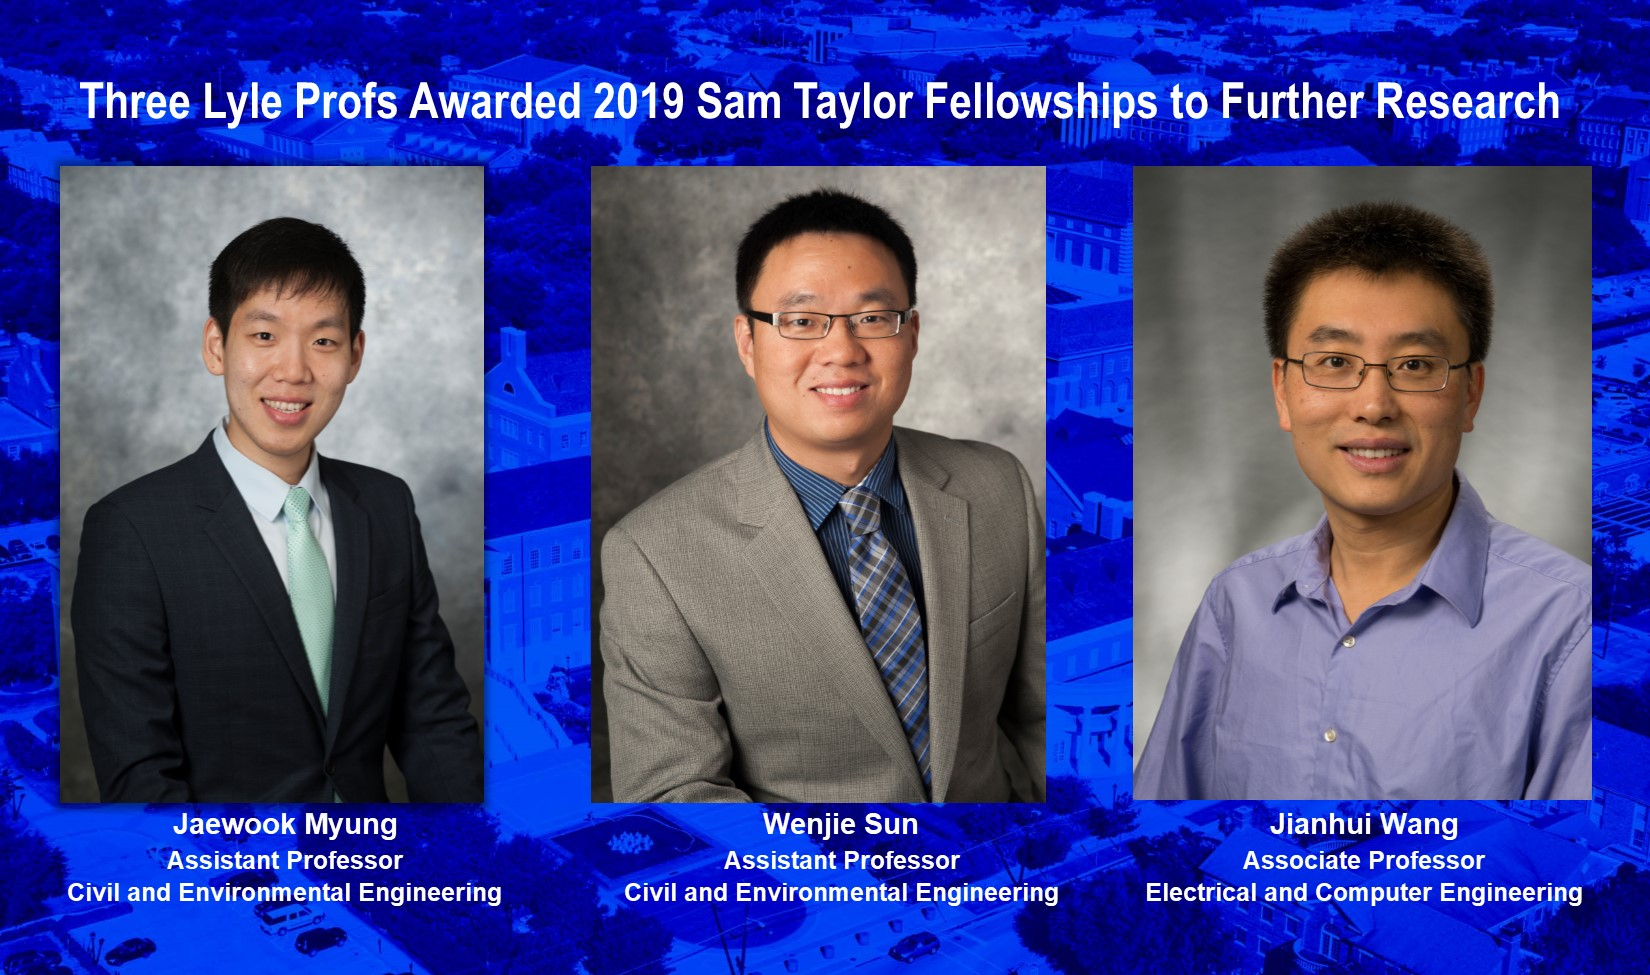 Sam Taylor Fellowship Awards